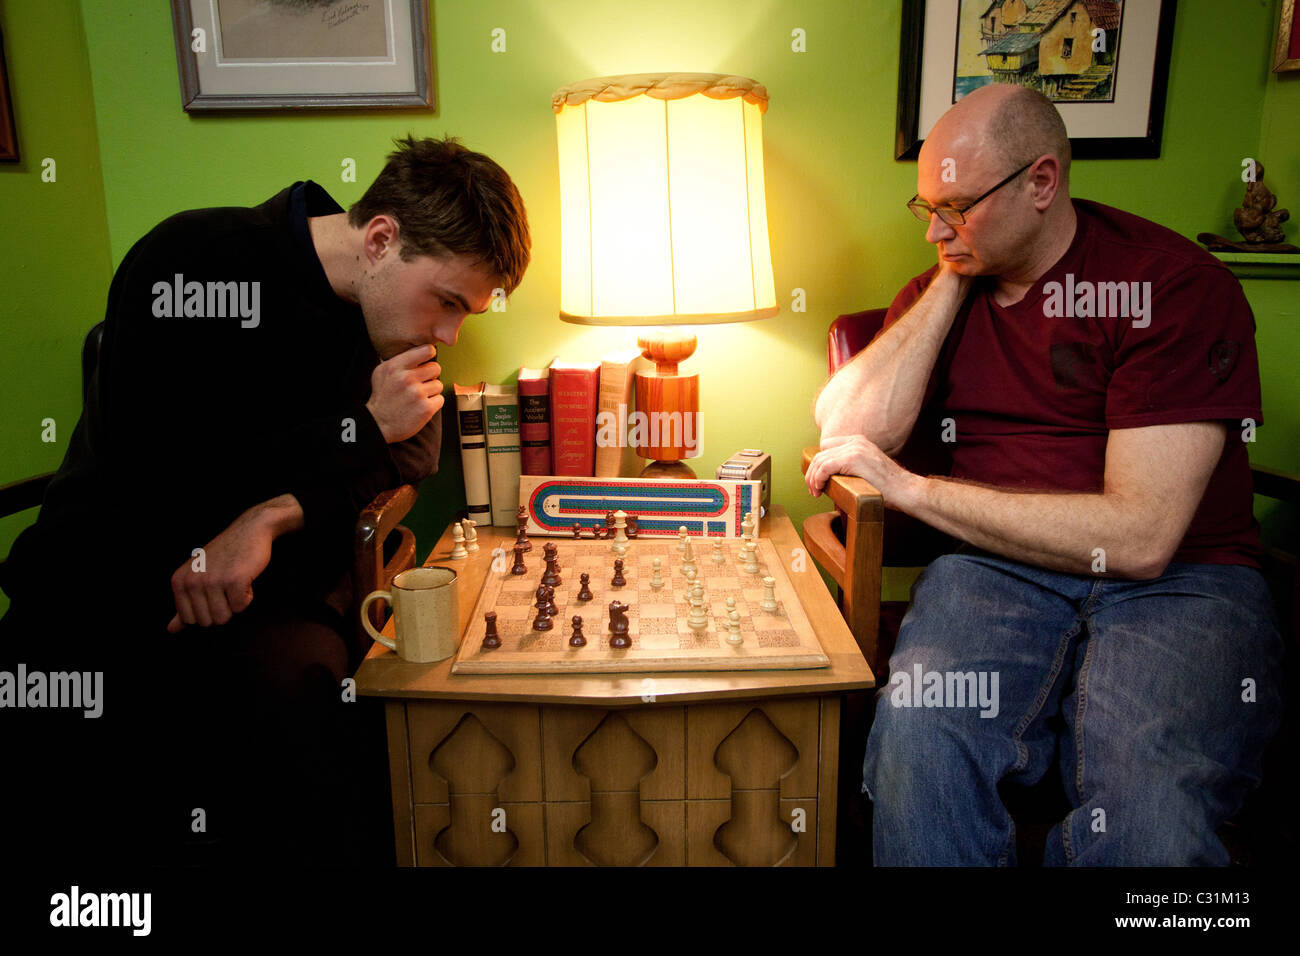 Two men play chess inside a barber shop. - Stock Image